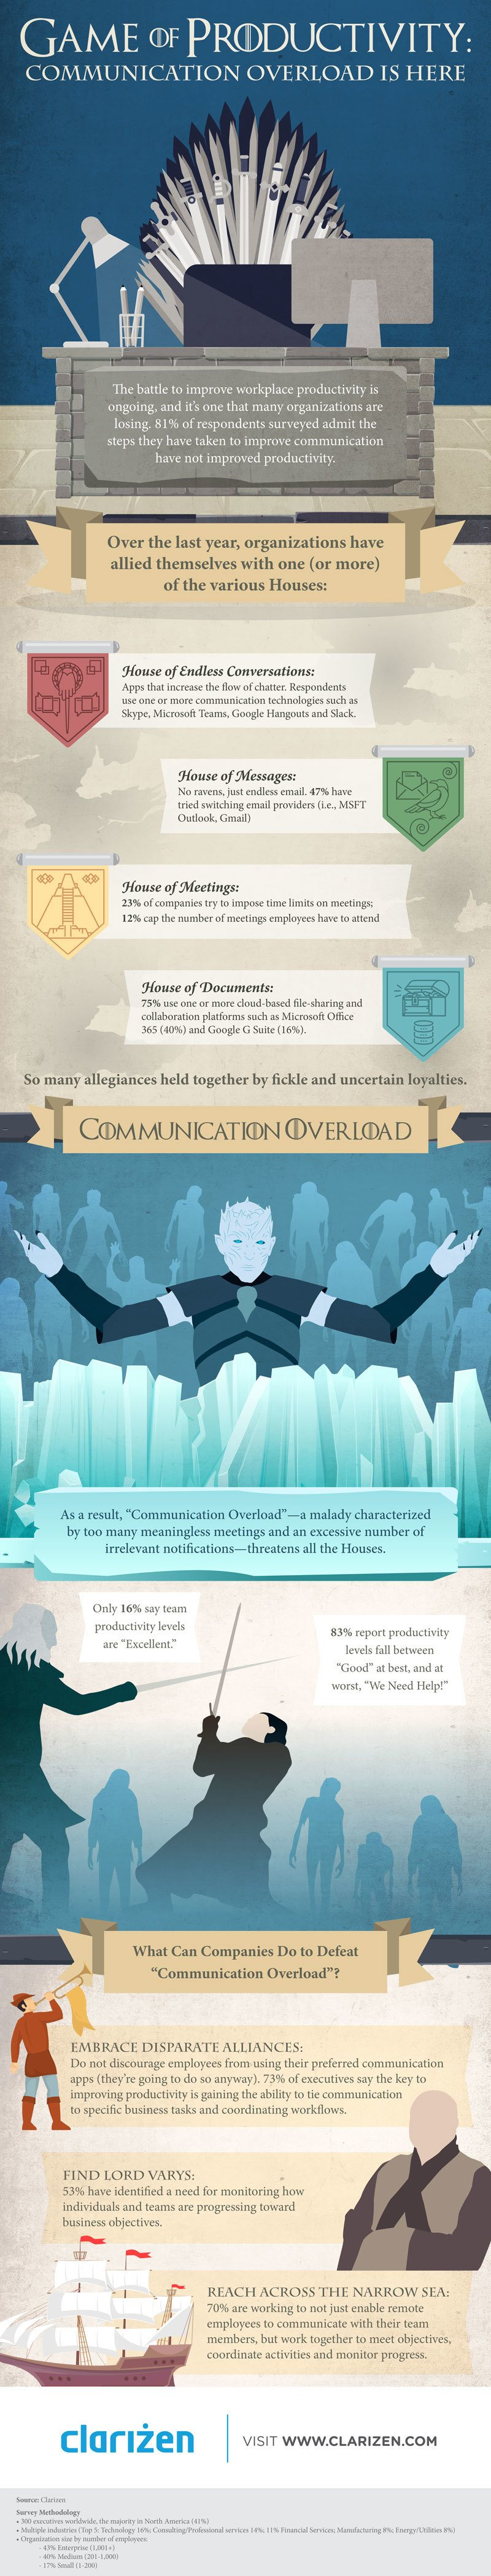 Game of Productivity: Communication Overload is Here Infographic